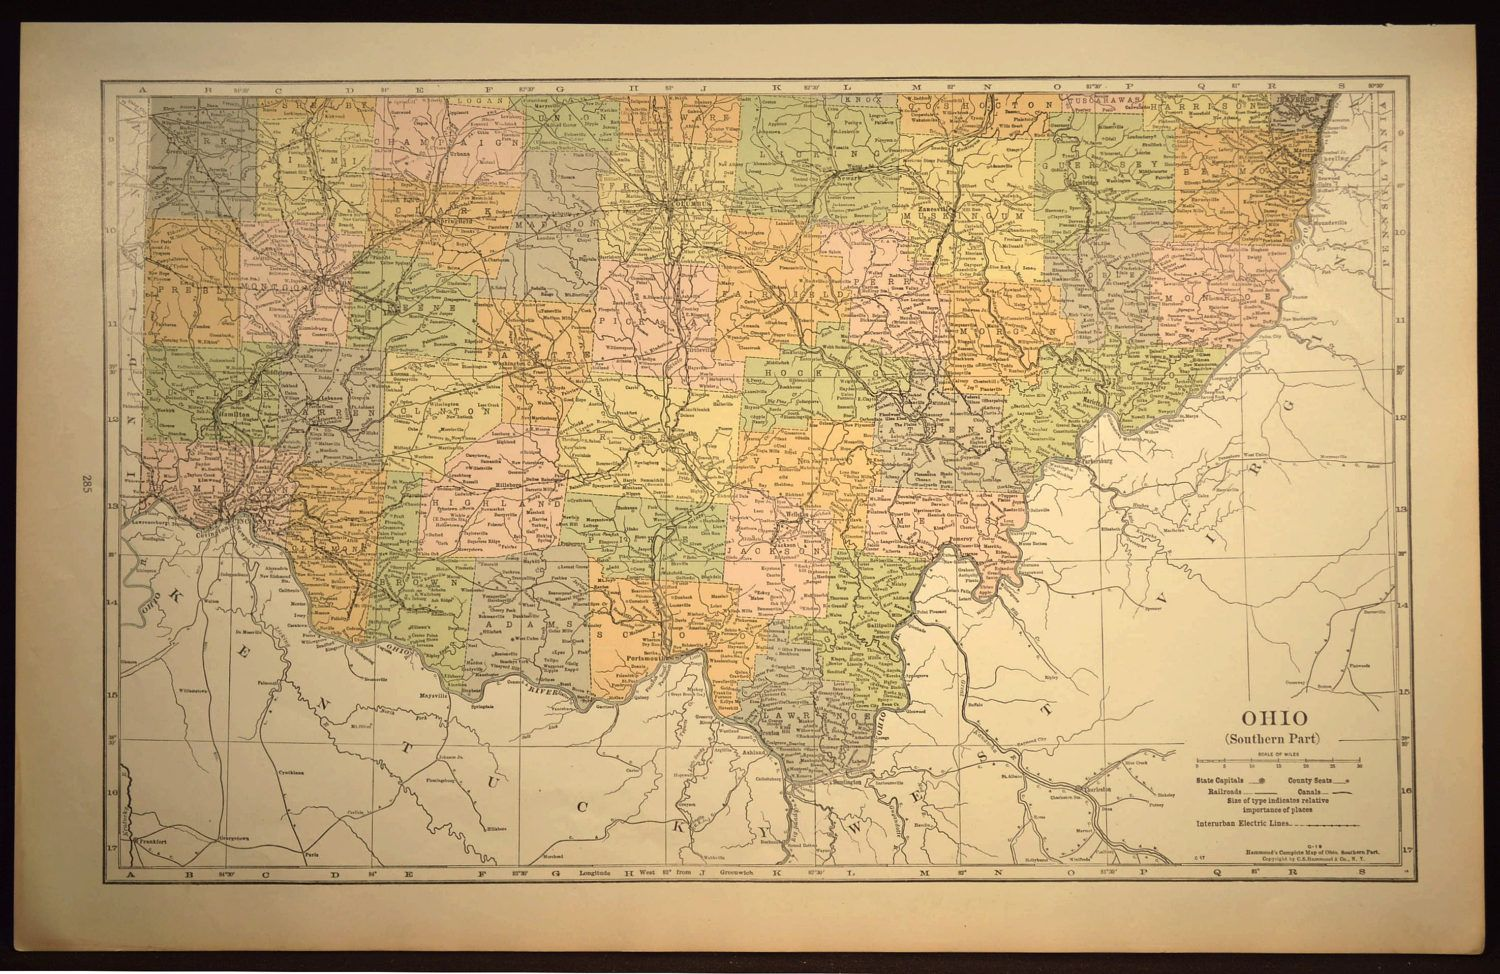 Southern Ohio Map LARGE South Ohio Wall Art Decor | Map Wall Decor ...